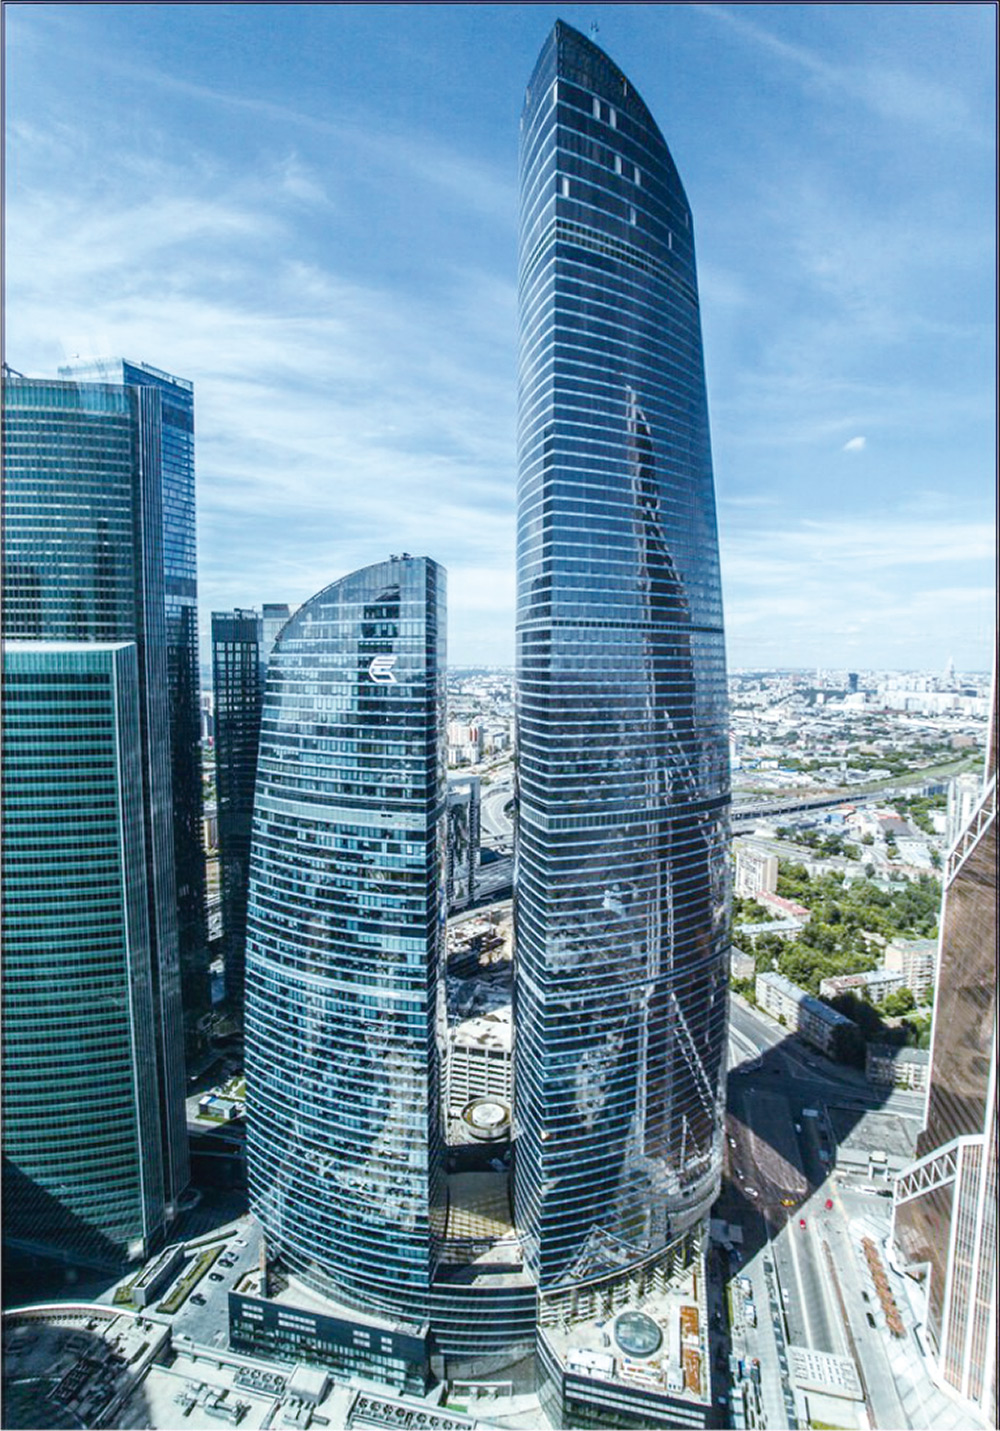 Russian Federation Tower